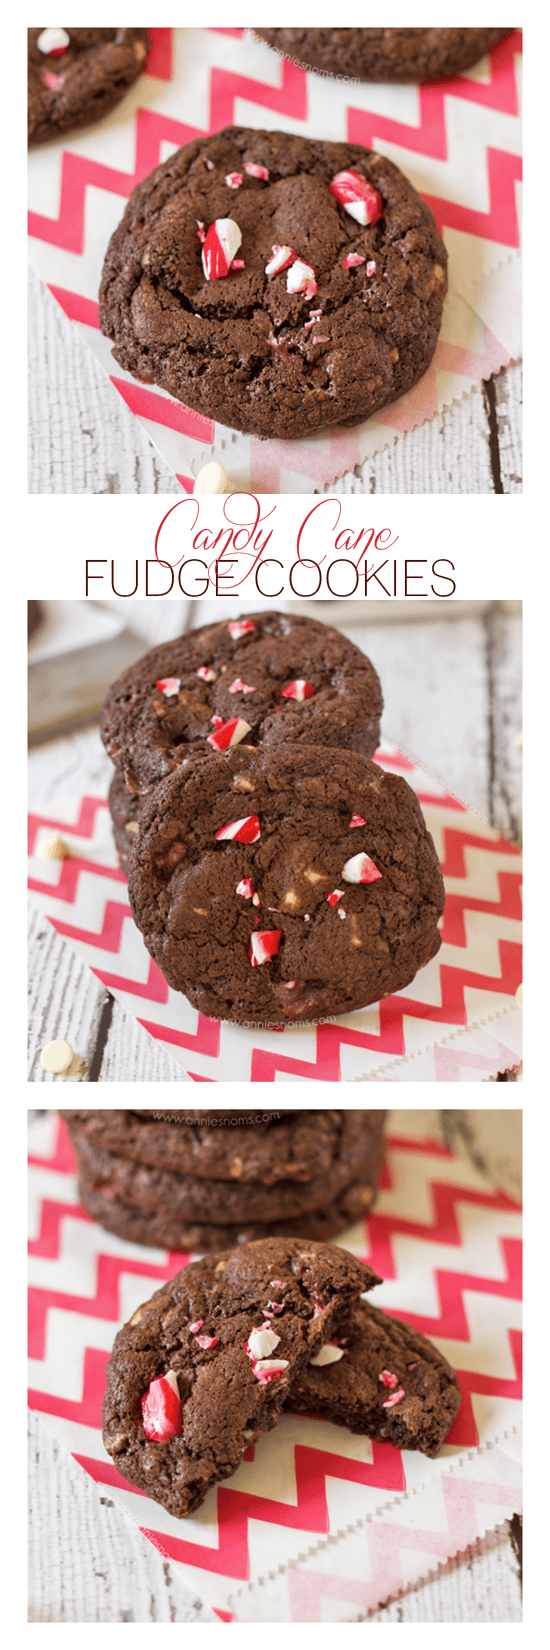 These Candy Cane Fudge Cookies have melted chocolate in the batter to make them super fudgy along with chunks of oozing white chocolate and the refreshing mint flavour of crushed candy canes.